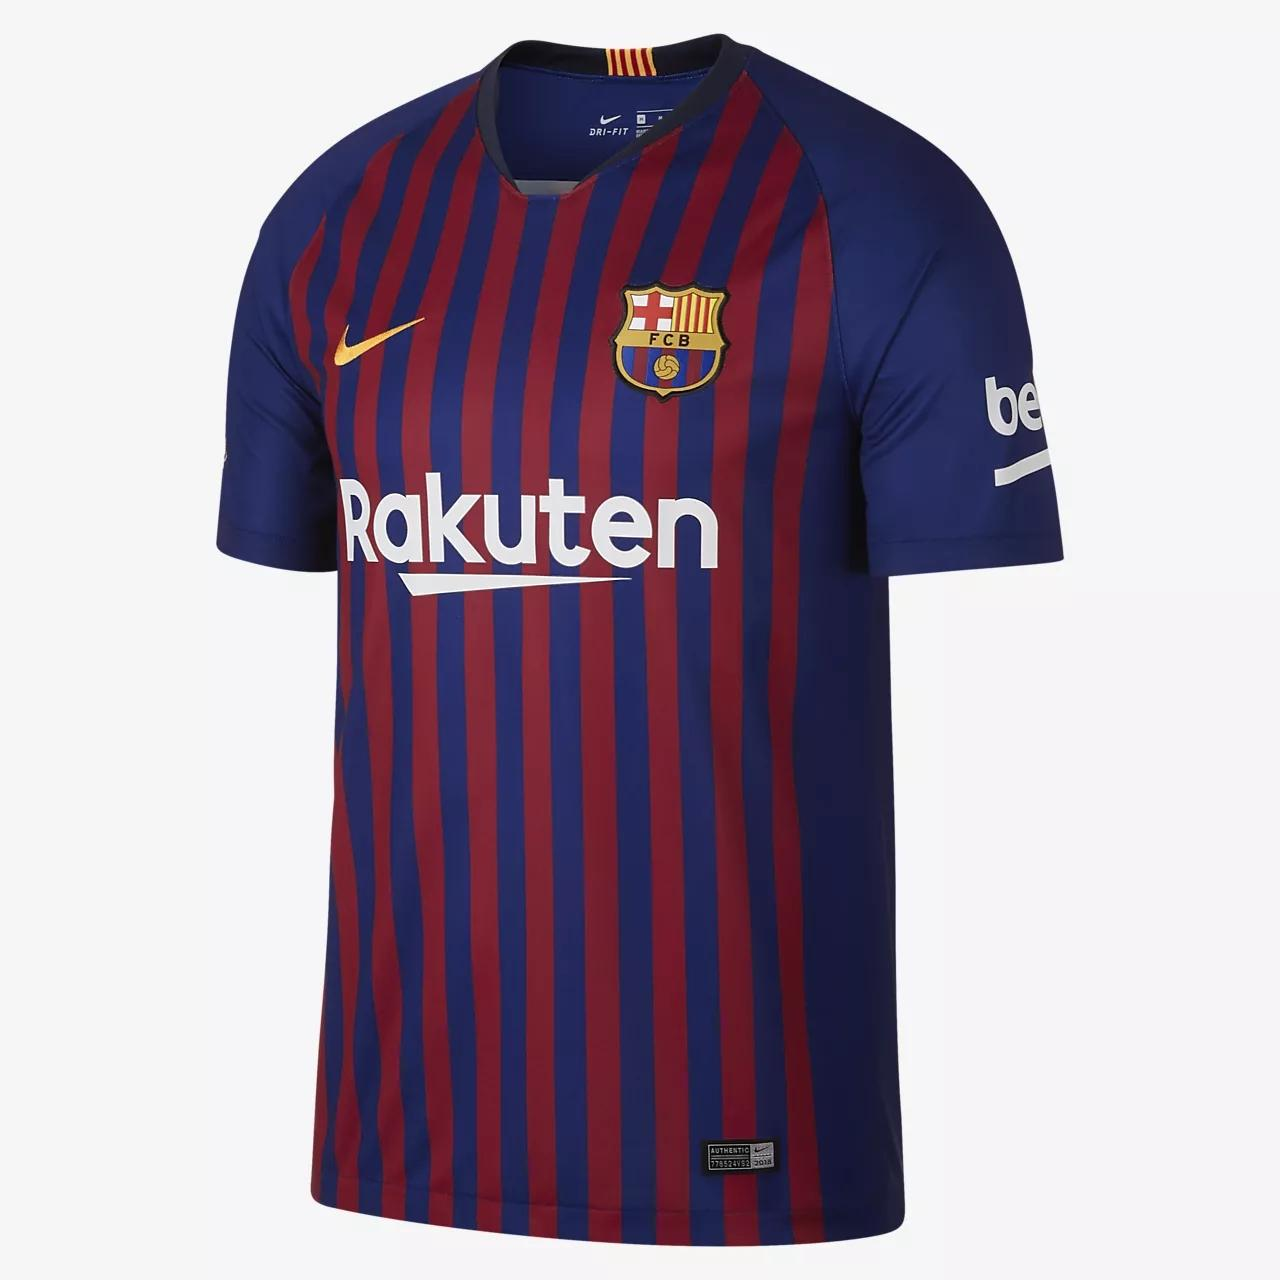 Sigab Store - Jersey Bola Barcelonaa Home Musim 2018/2019 New